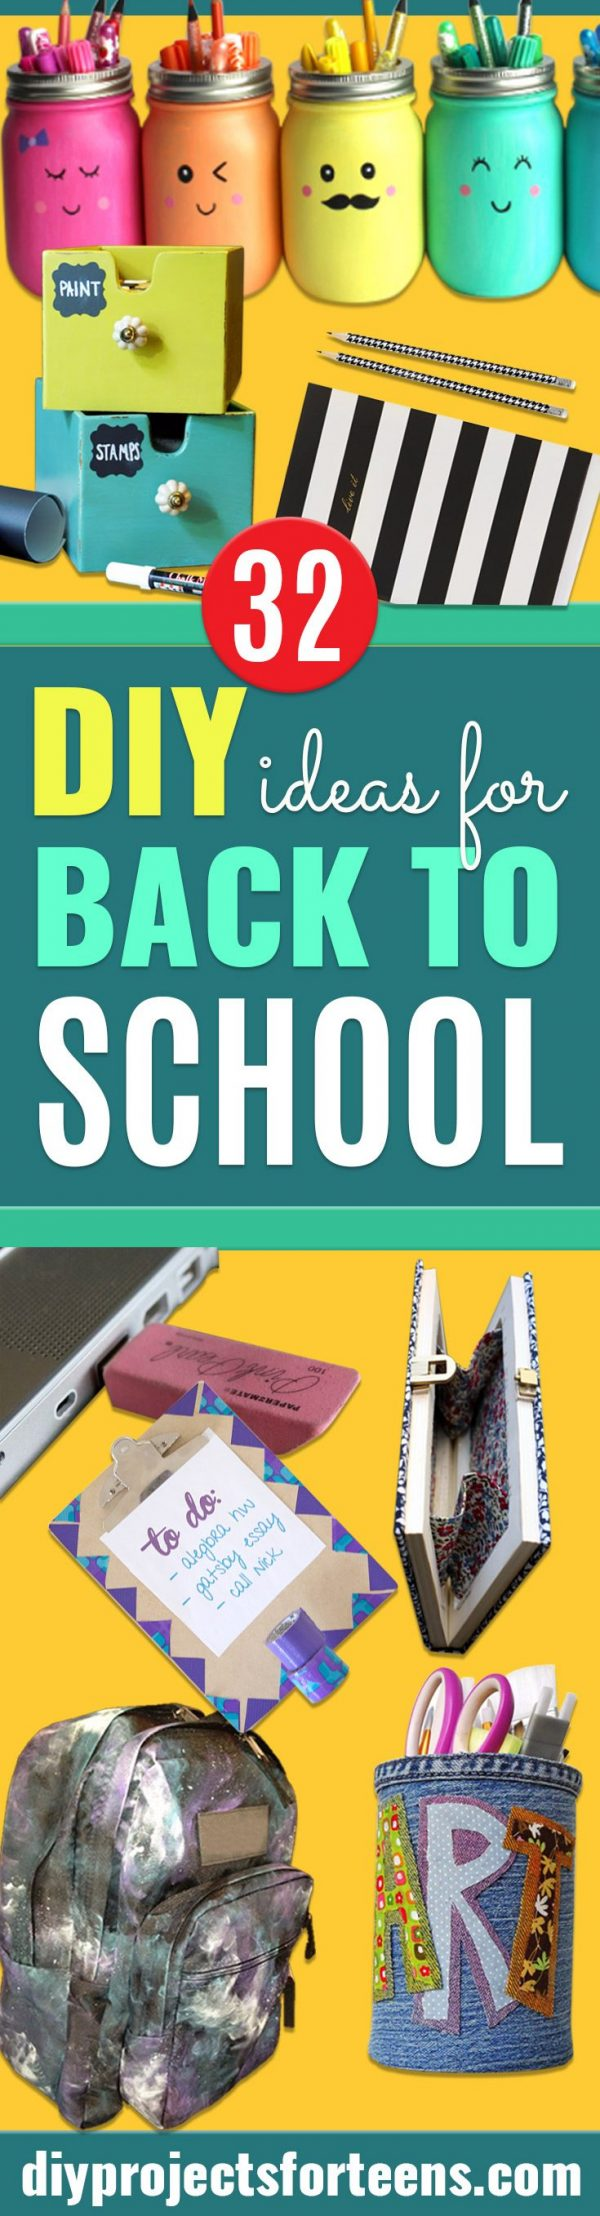 DIY School Supplies You Need For Back To School - Cuter, Cool and Easy Projects for Teens, Tweens and Kids to Make for Middle School and High School. Fun Ideas for Backpacks, Pencils, Notebooks, Organizers, Binders #diyschoolsupplies #backtoschool #teencrafts